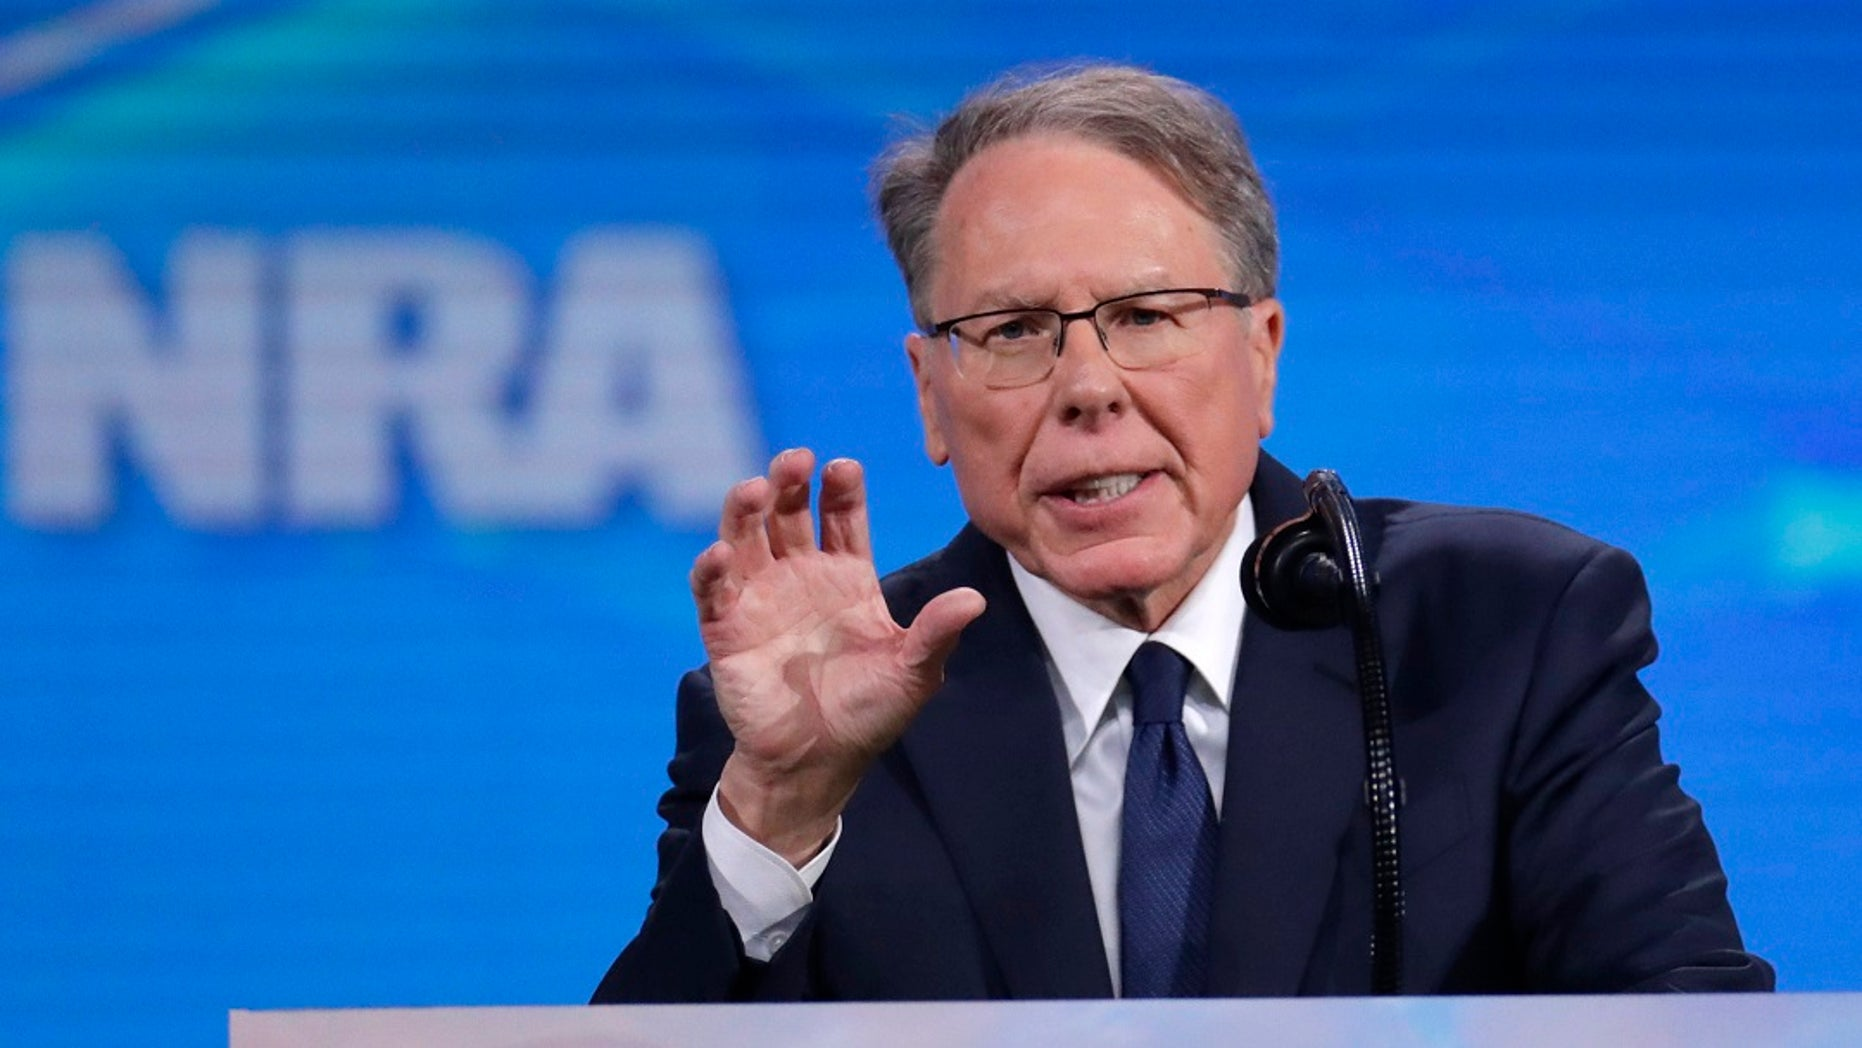 Nation Rifle Association Executive Vice President Wayne LaPierre speaks at the National Rifle Association Institute for Legislative Action Leadership Forum in Lucas Oil Stadium in Indianapolis. (AP Photo/Michael Conroy)